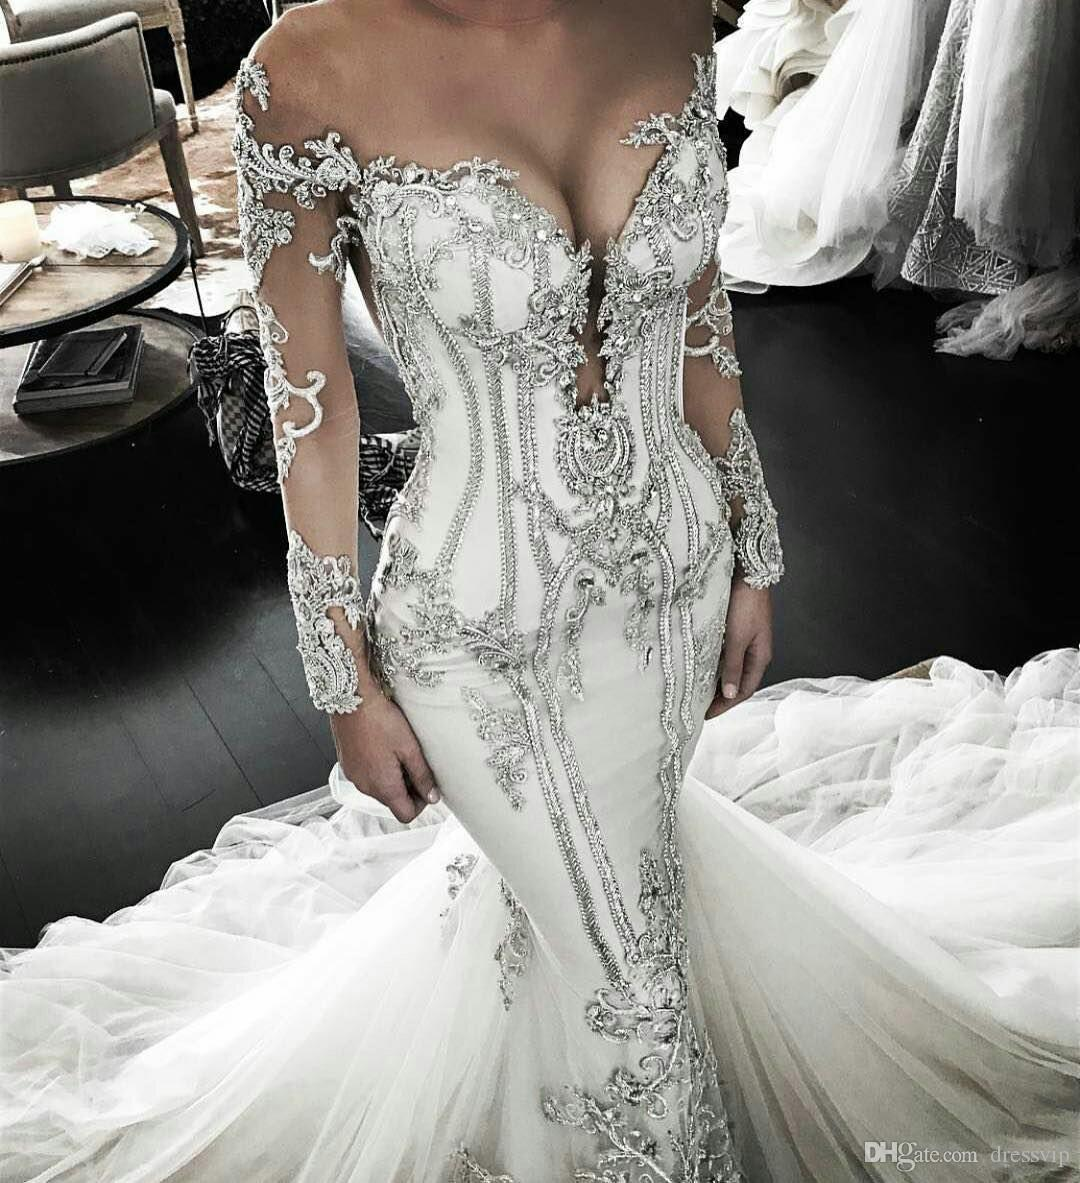 dress - Dresses Wedding with bling video